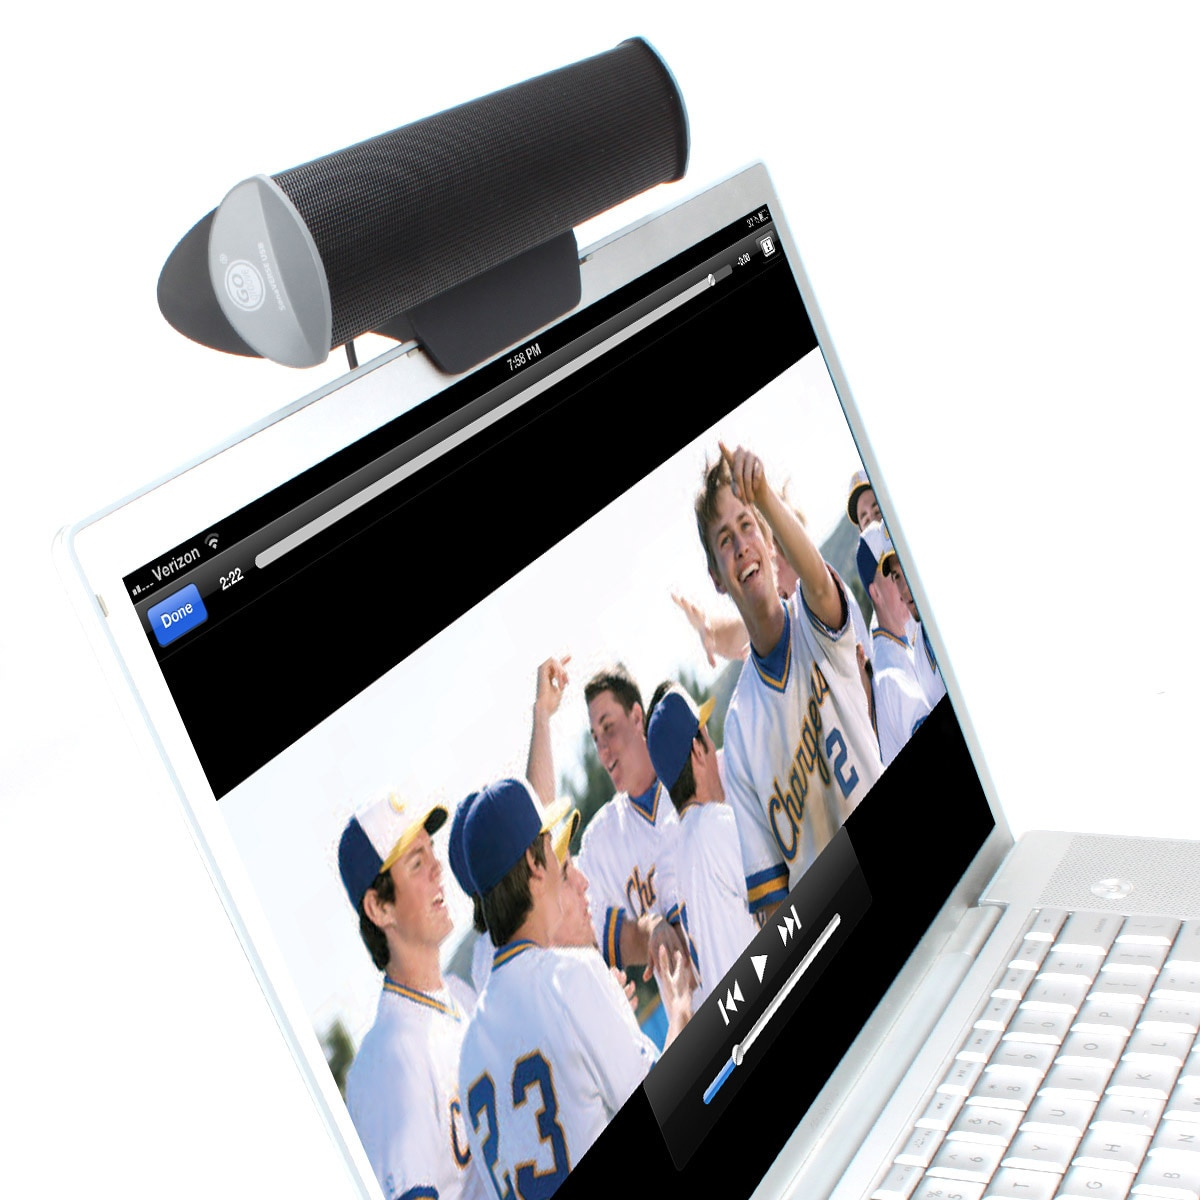 GOgroove USB Multimedia Speaker Bar with 2 High-Excursion...